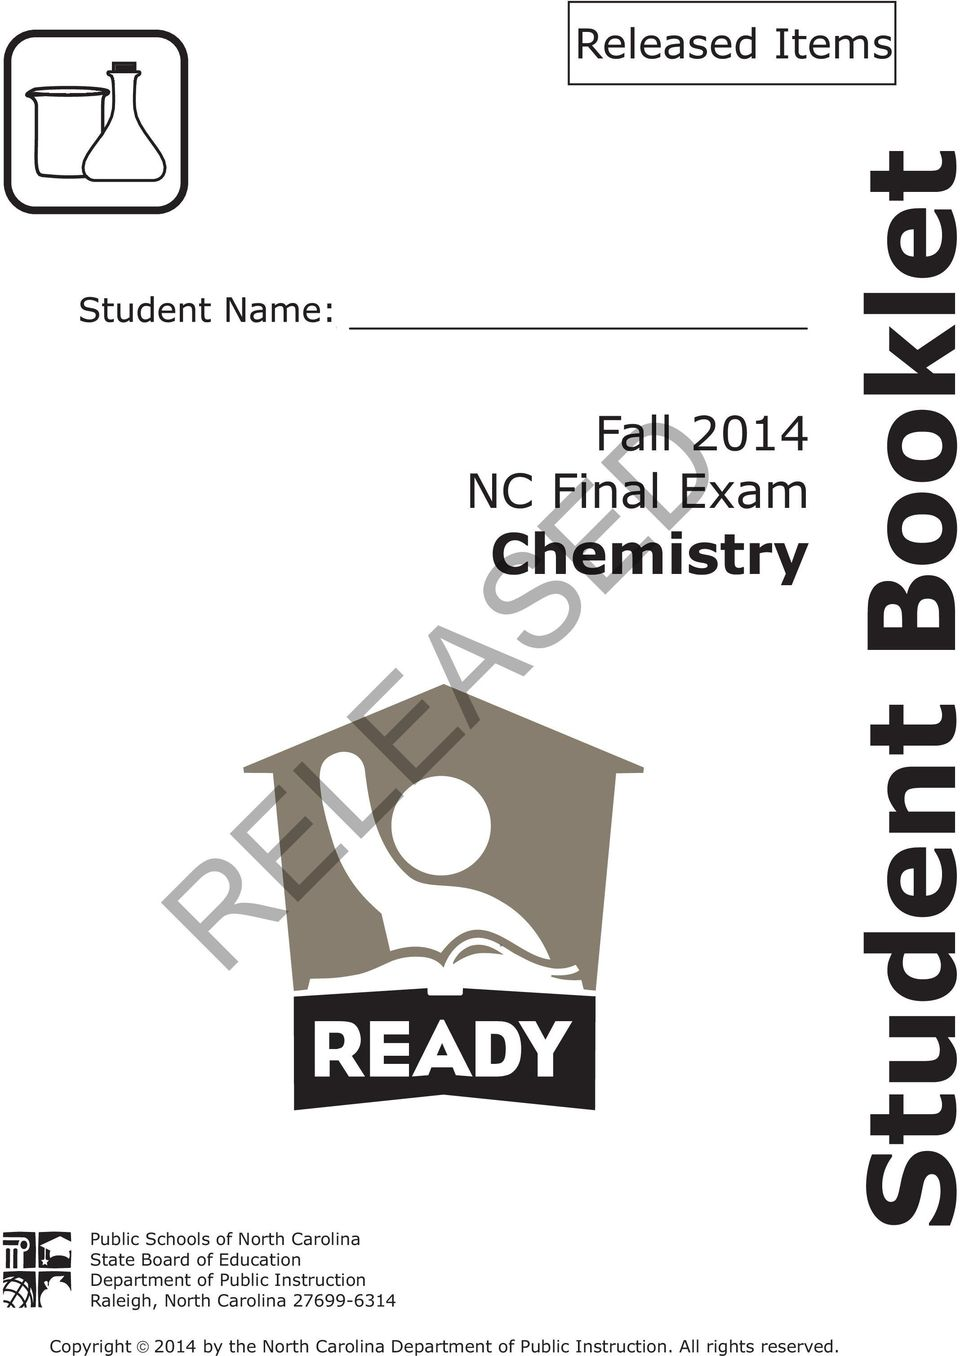 RELEASED  Student Booklet  Chemistry  Fall 2014 NC Final Exam